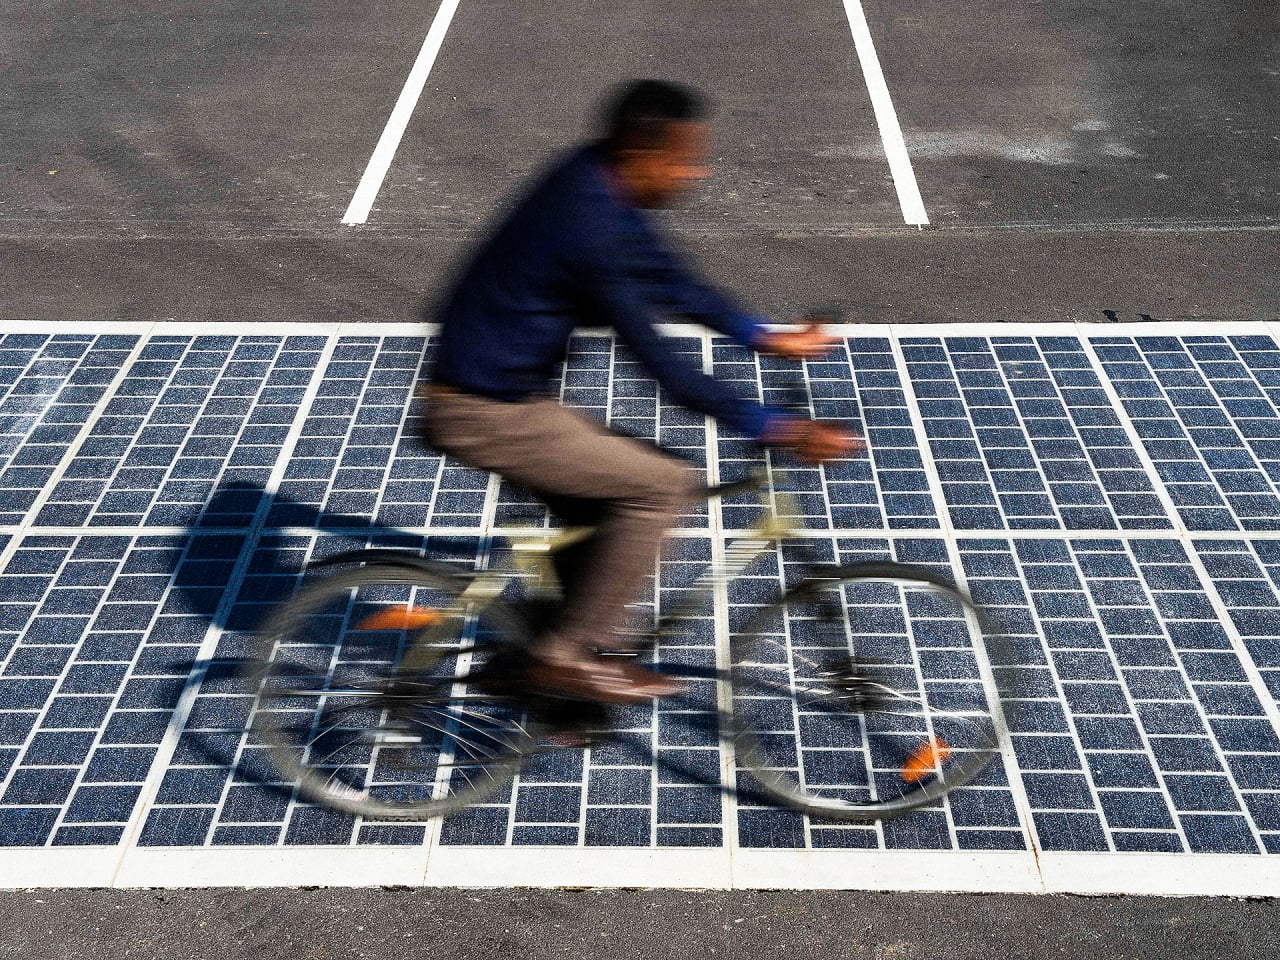 France Plans To Build Hundreds Of Miles Of Solar-Paved Roads